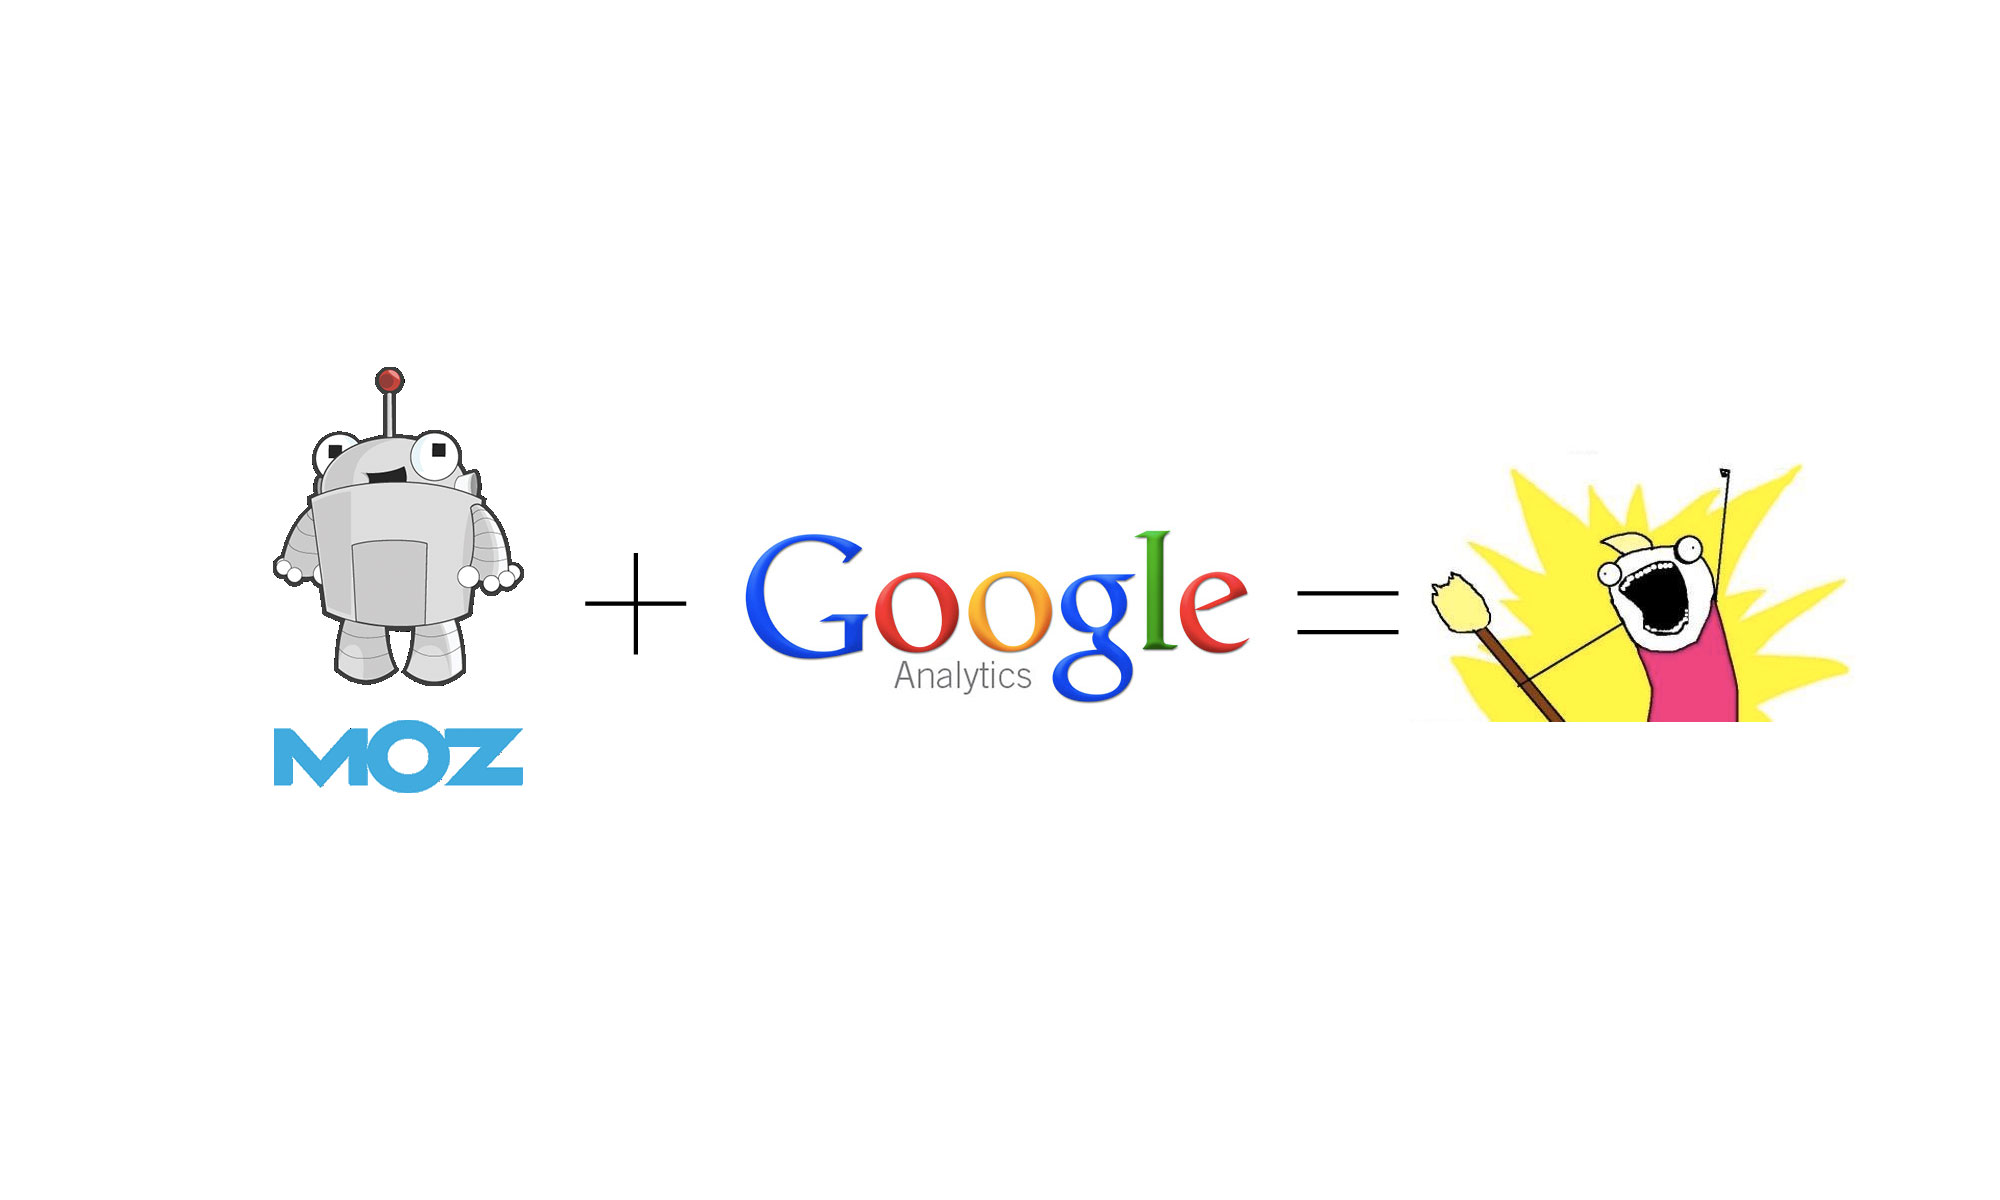 Moz + google analytics = awesome